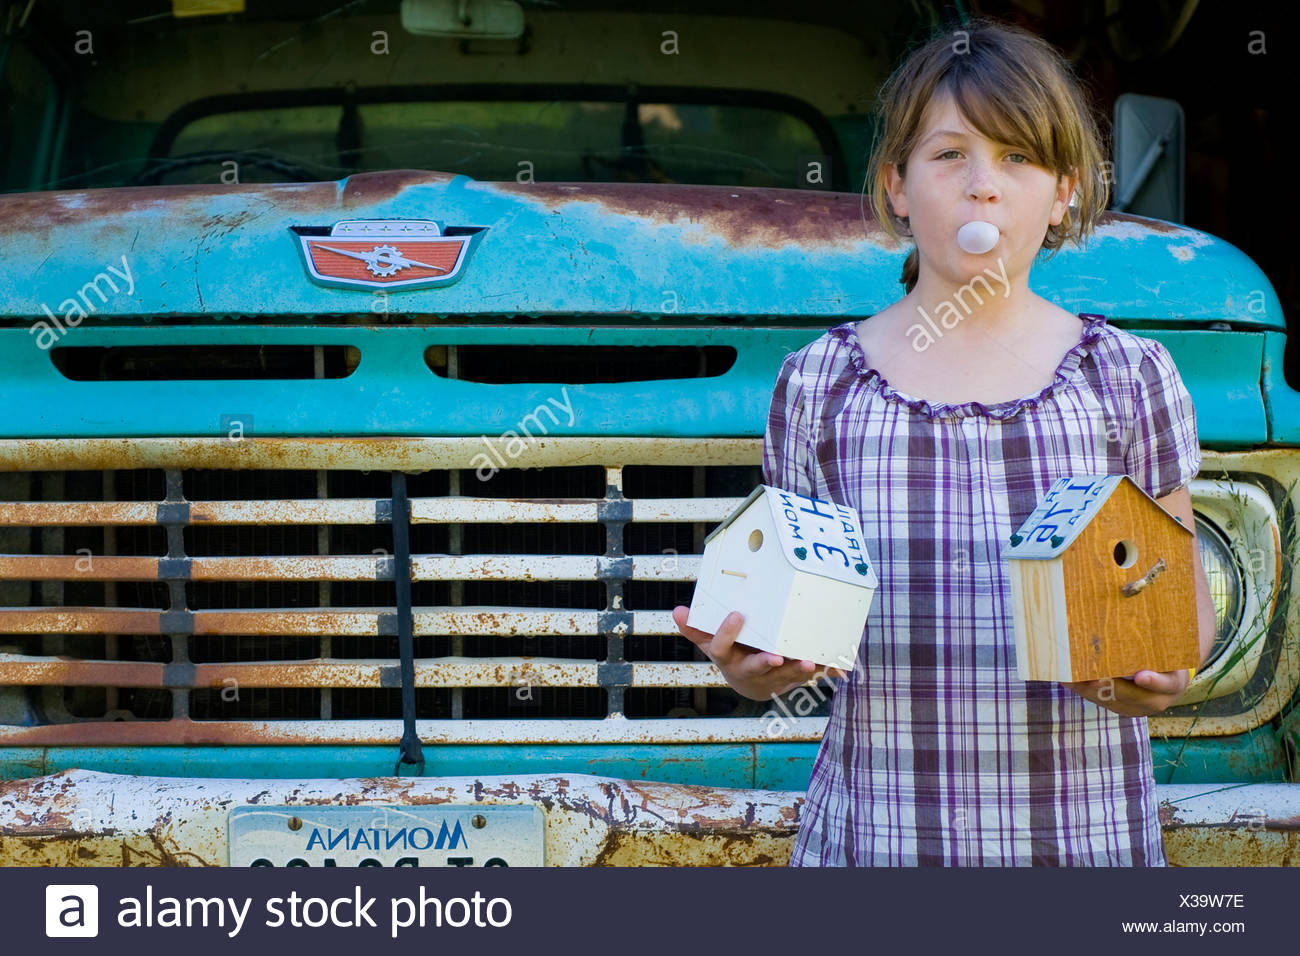 Girl Blowing Bubble Gum And Holding Birdhouses In Front Of A Rusty Pick Up  Truck